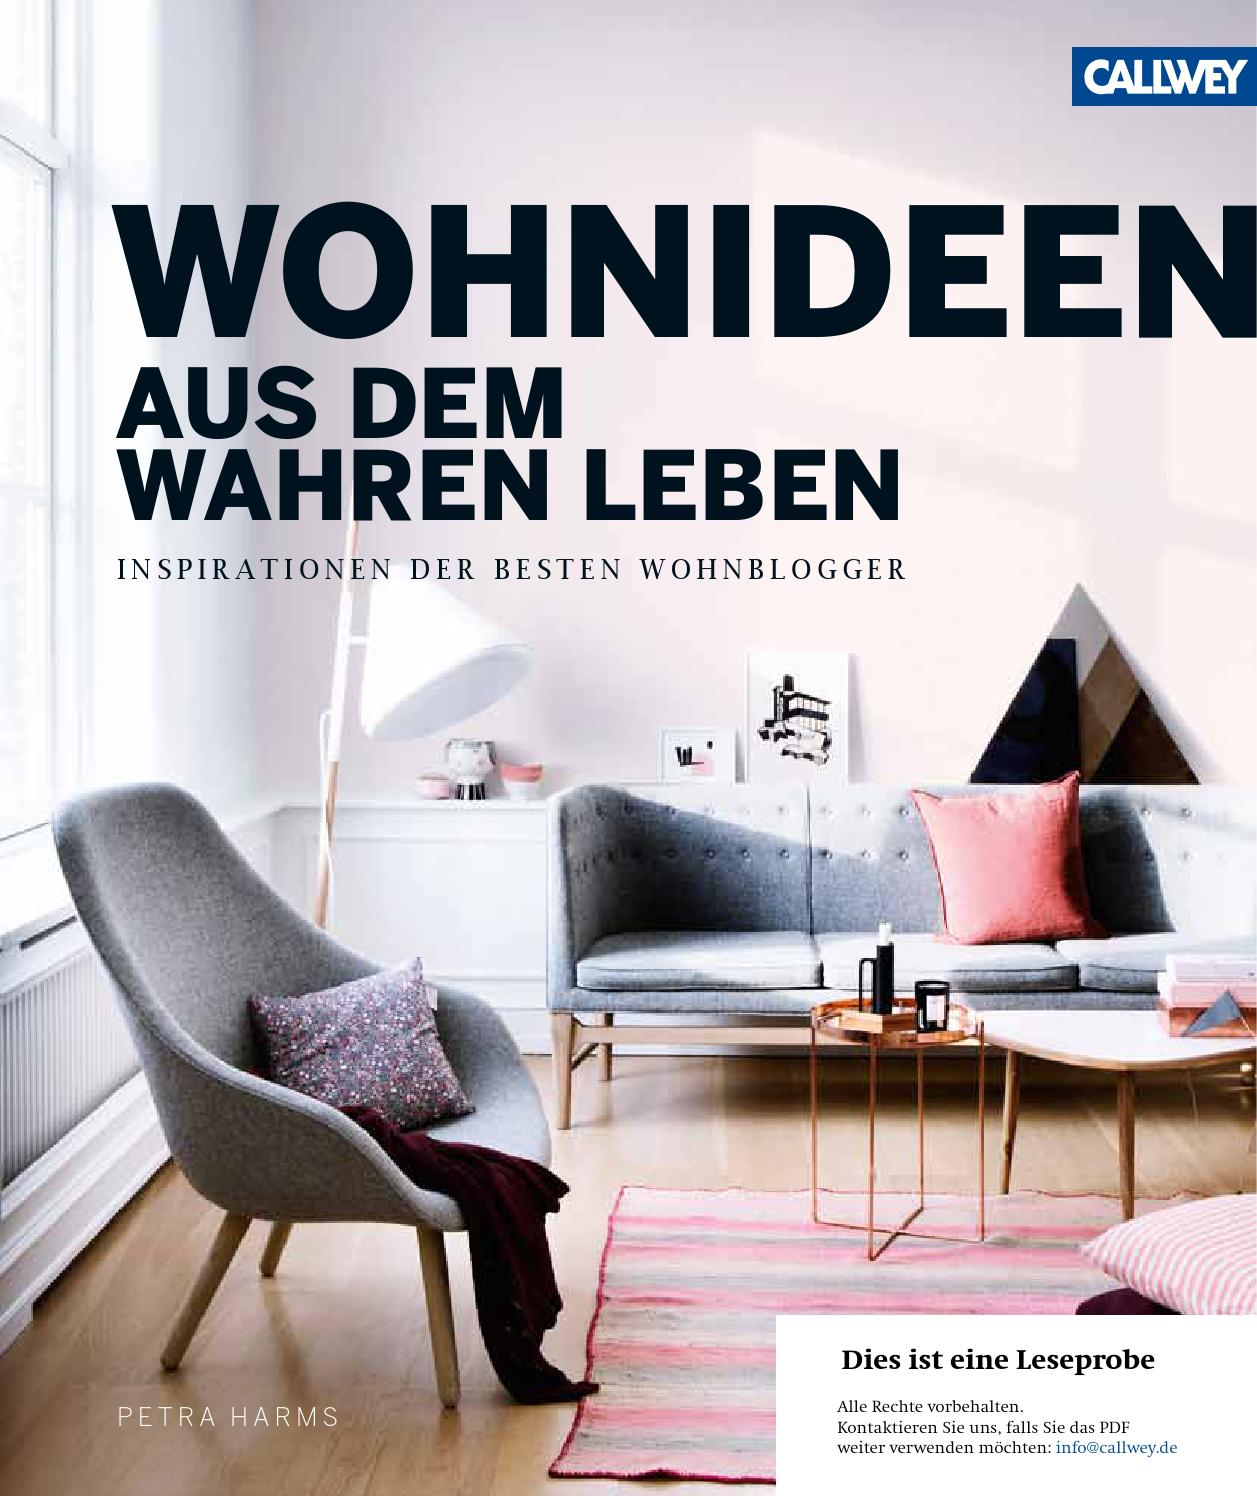 wohnideen aus dem wahren leben by georg d w callwey gmbh co kg issuu. Black Bedroom Furniture Sets. Home Design Ideas